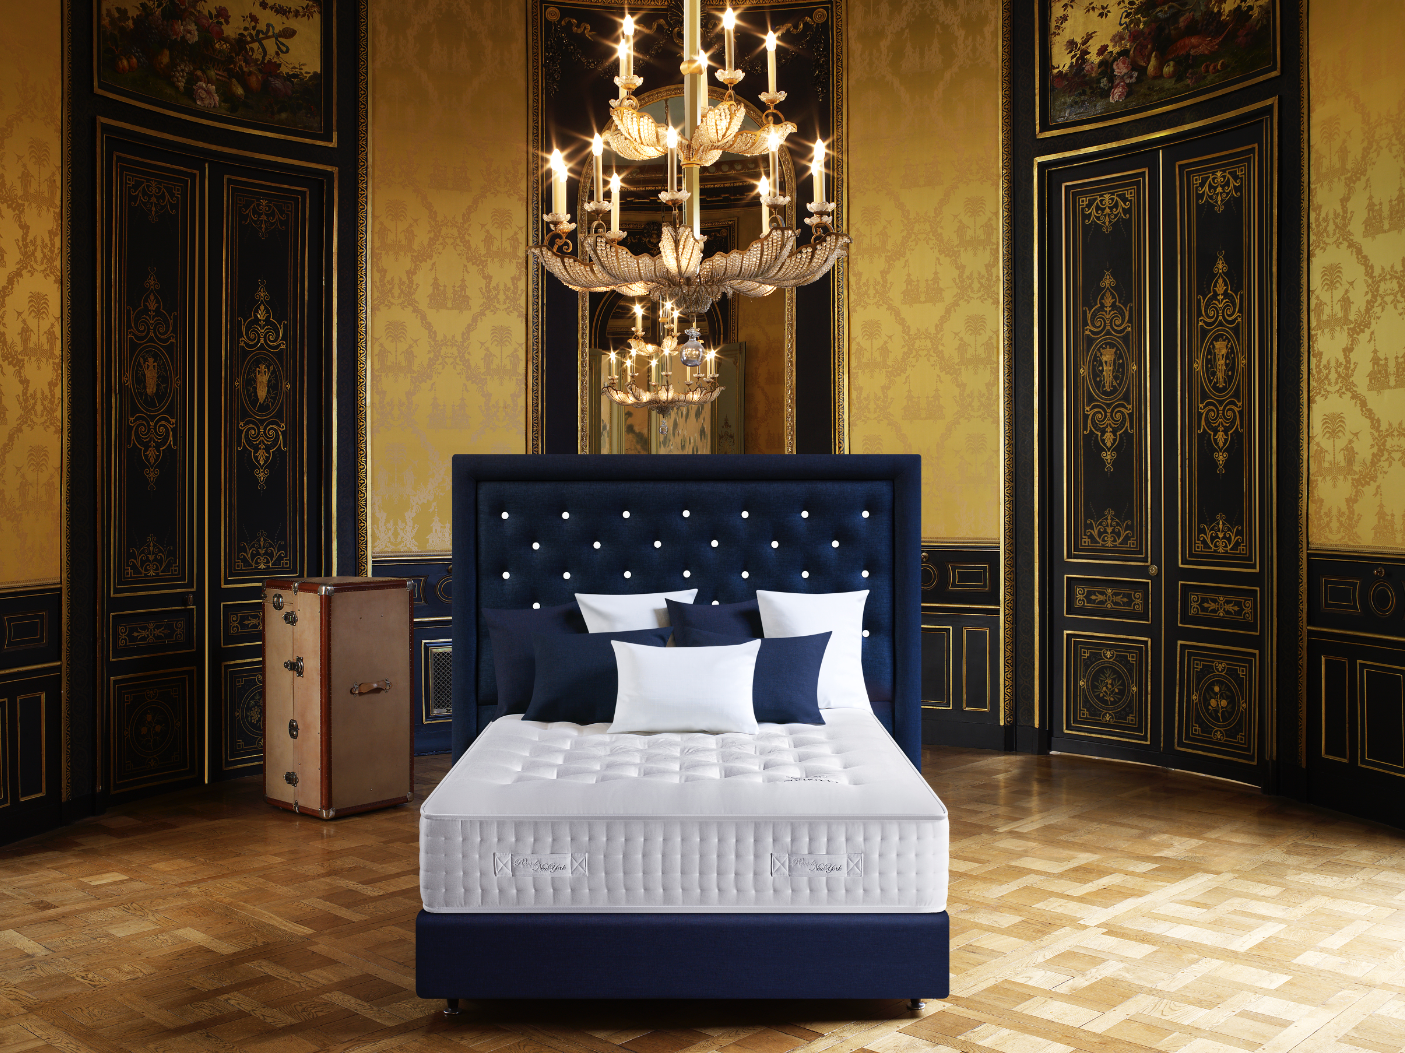 la maison de la literie prestige amazing maison de la literie prestige finest cool amazing m. Black Bedroom Furniture Sets. Home Design Ideas